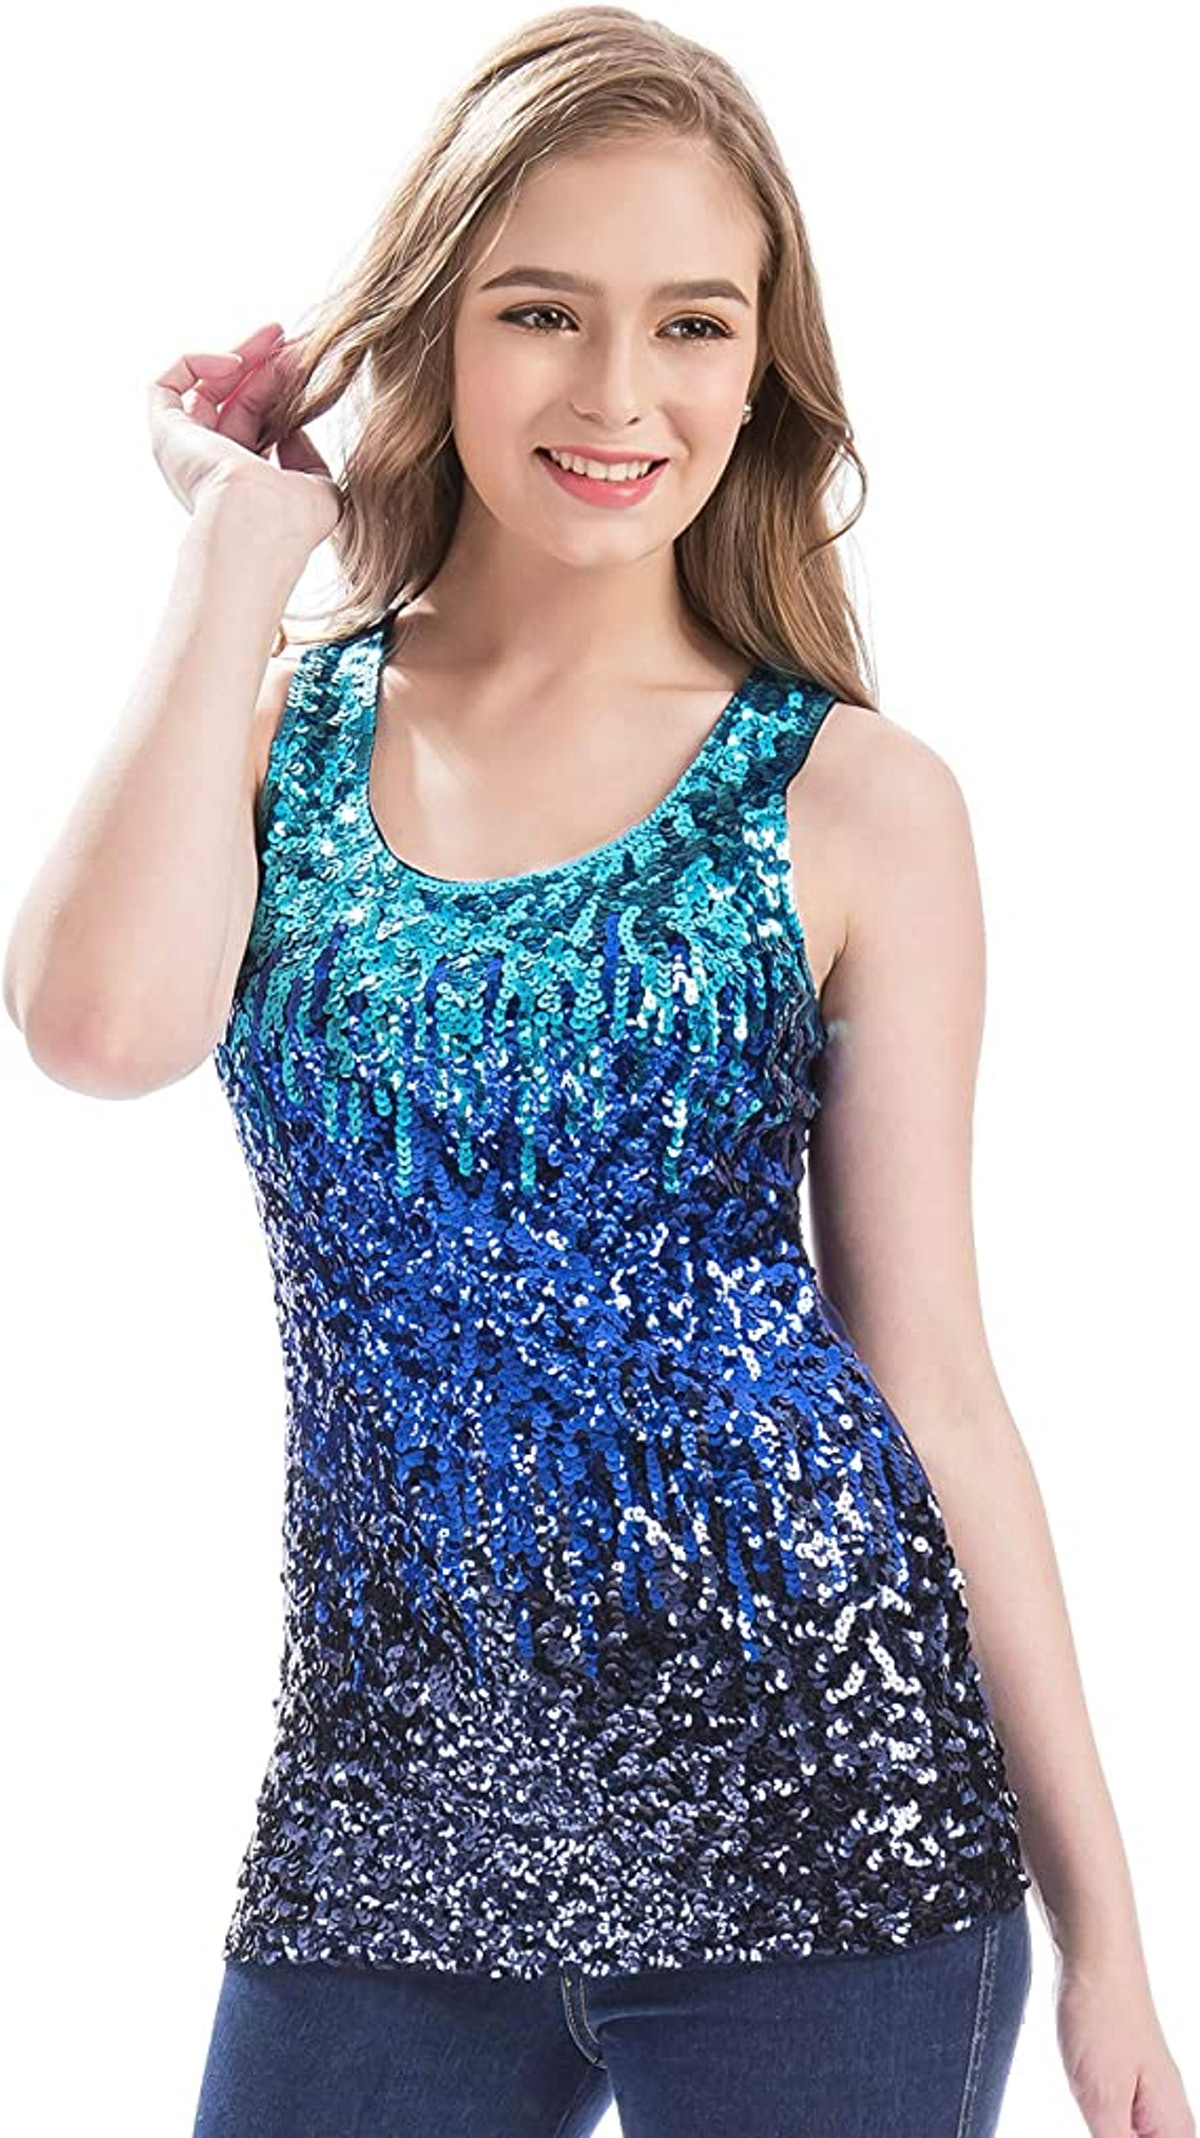 Sparkle Top for a Zoe Brooks DIY Zoey 101 Halloween Costume